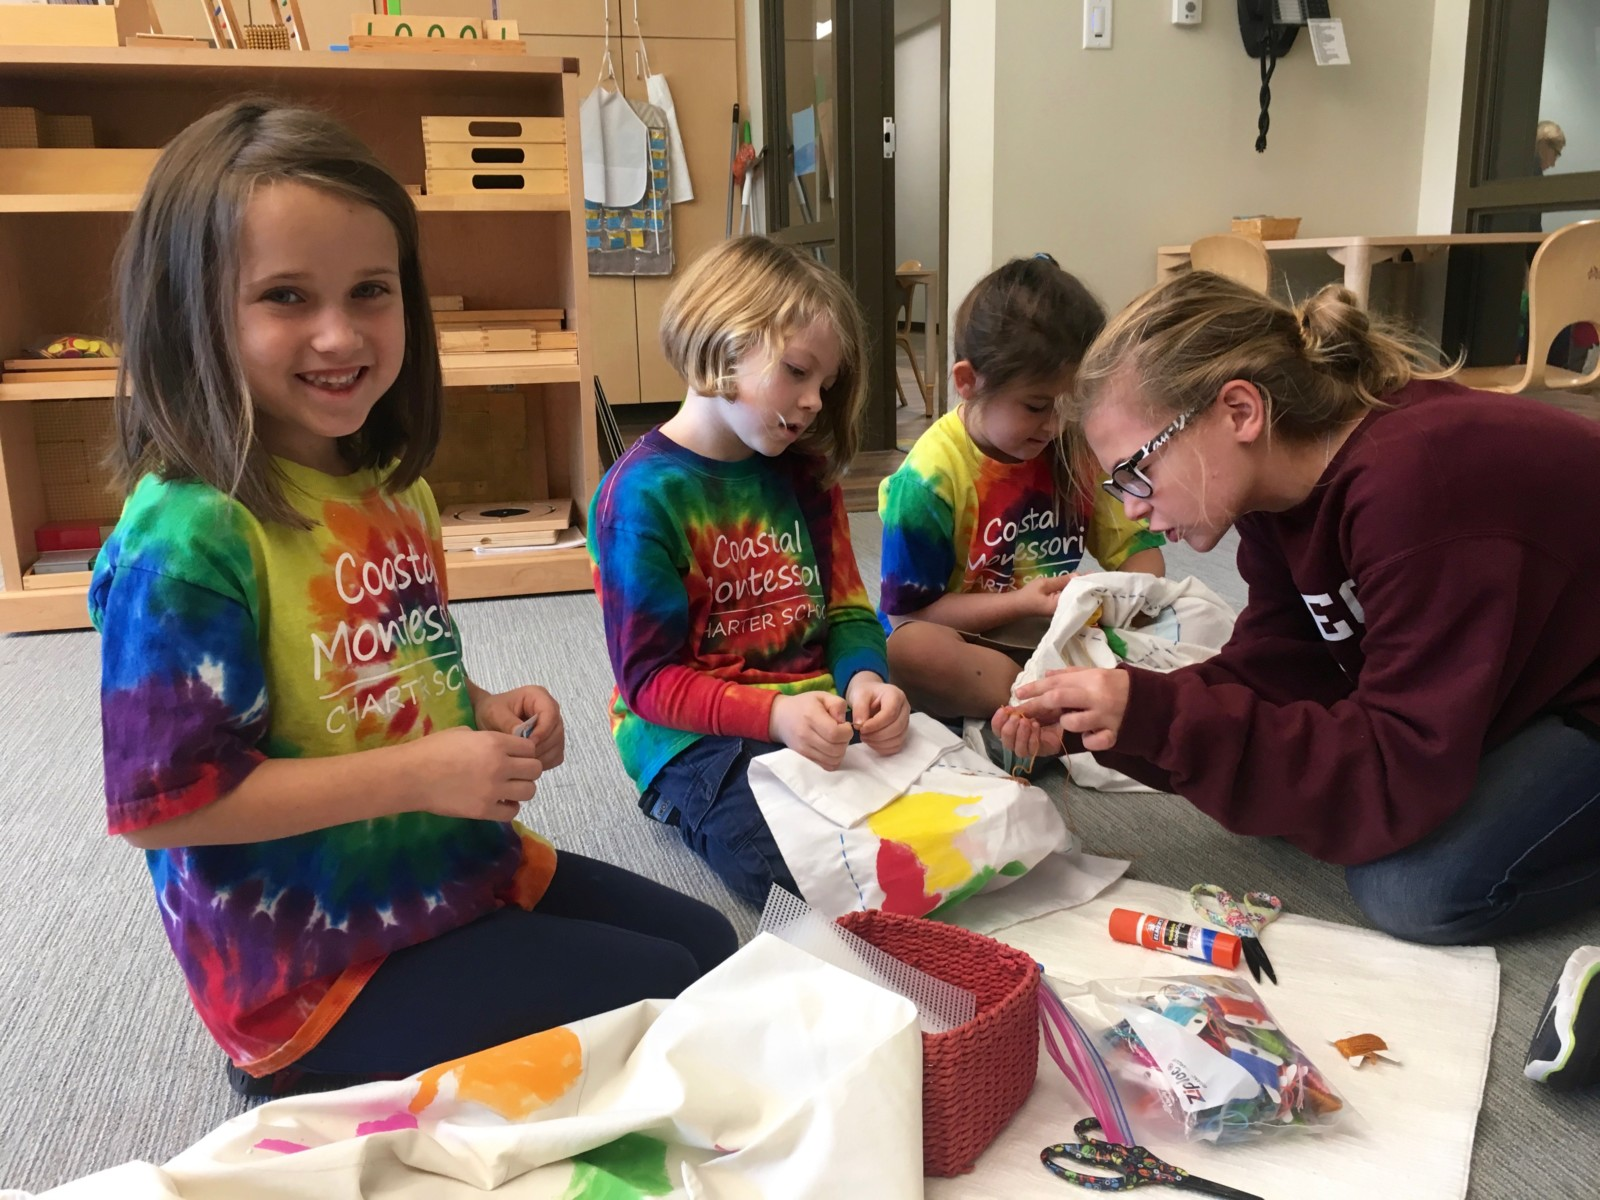 Elementary students learn sewing from a middle school student in a Montessori classroom